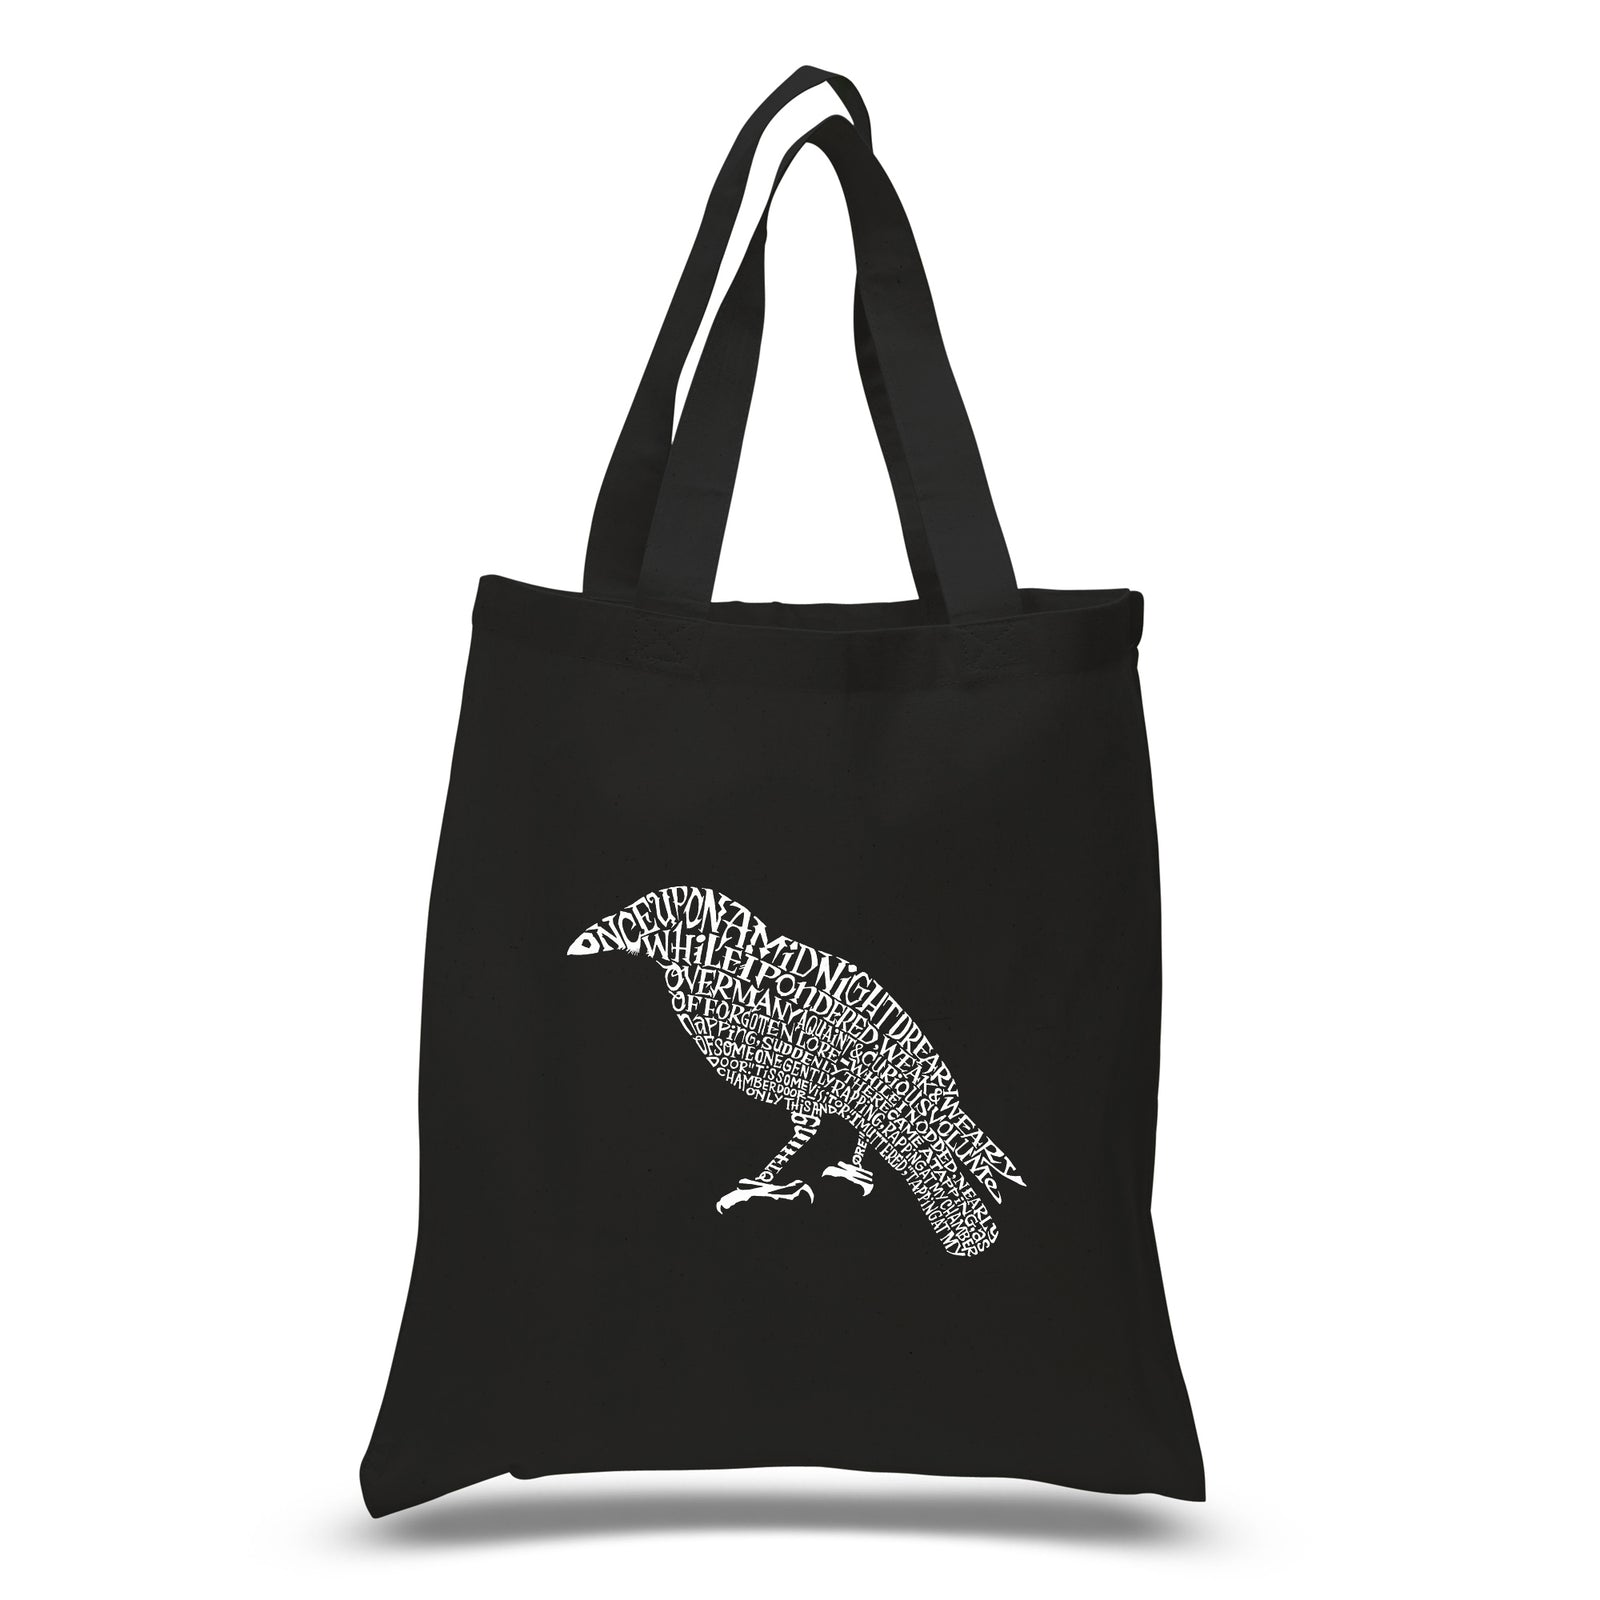 a96d259e76 Small Word Art Tote Bag - Edgar Allen Poe s The Raven – LA Pop Art